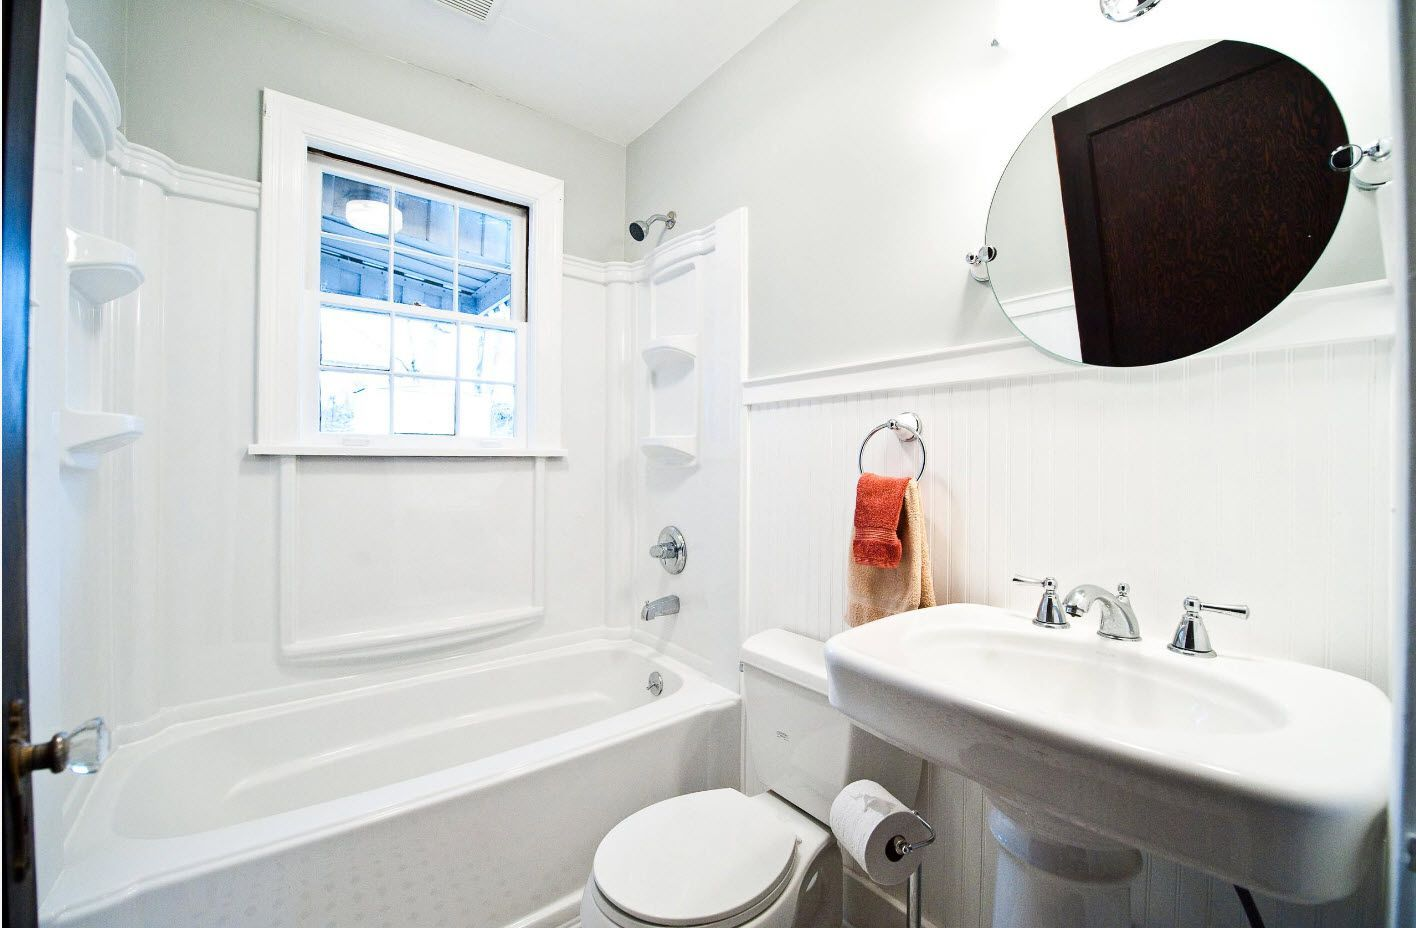 Classic design for the small functional bathroom space